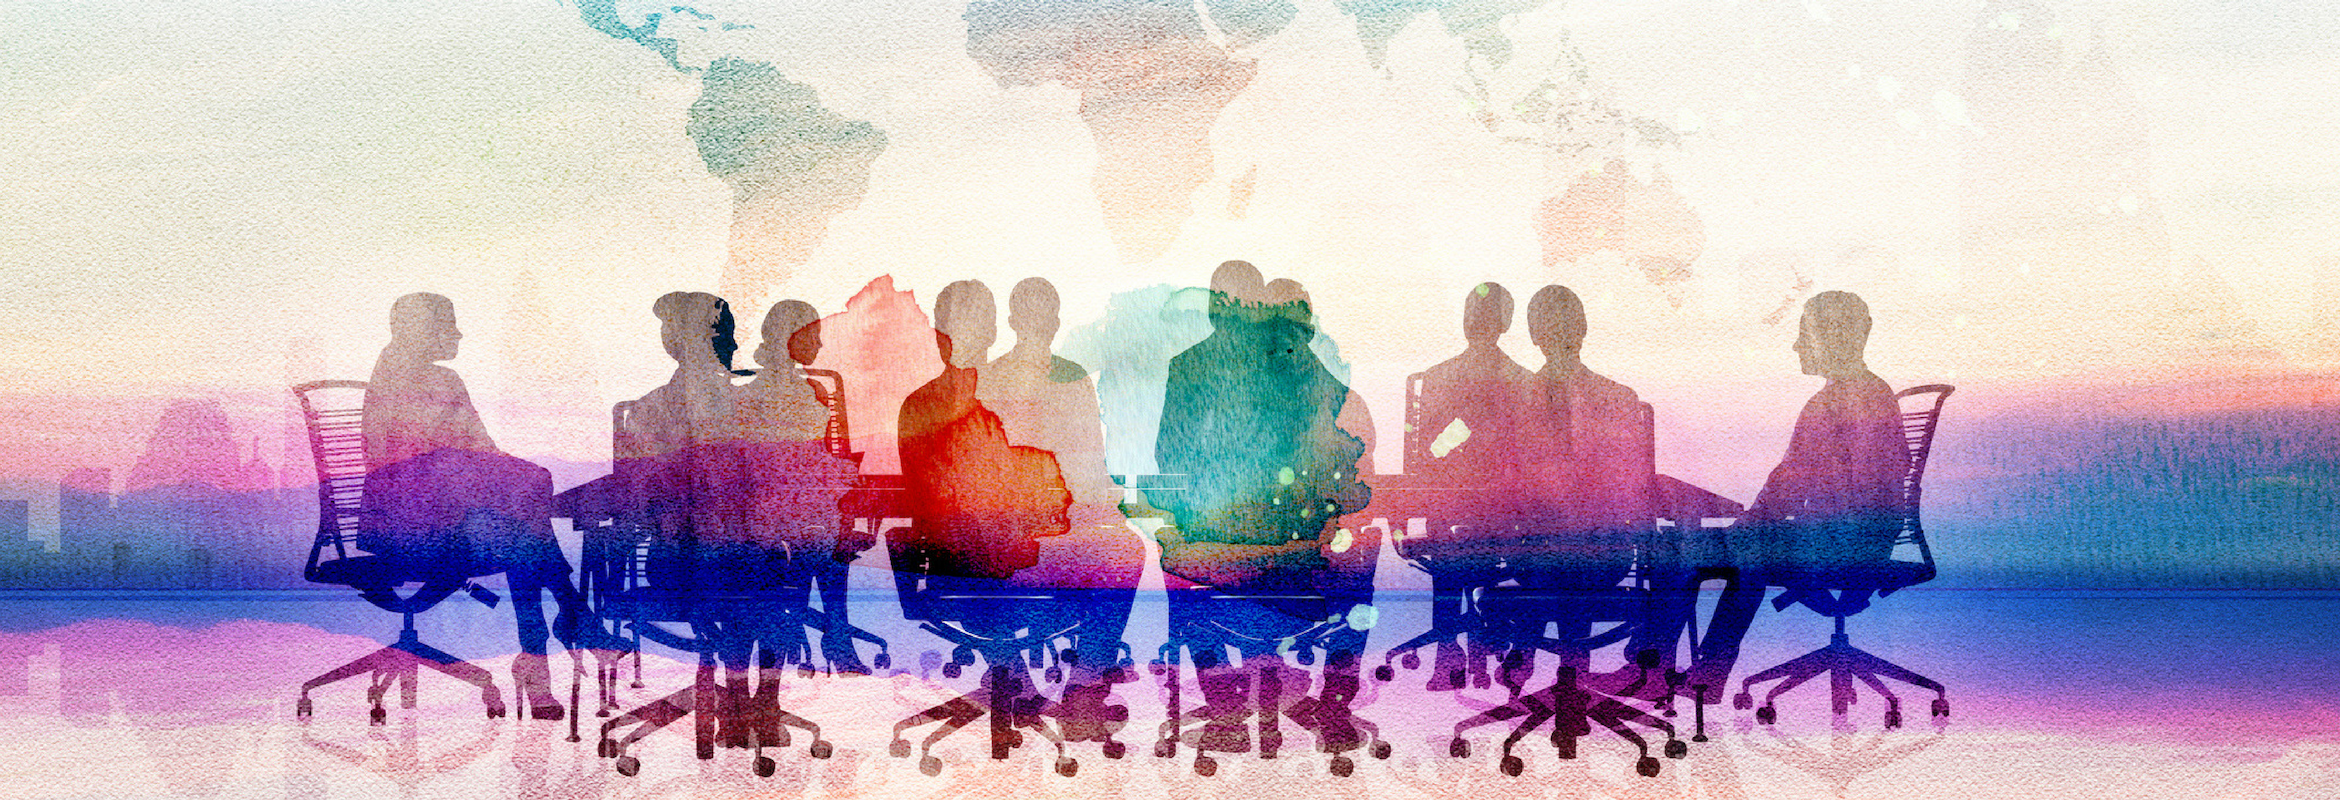 An image of people around a conference table with watercolor overlay.